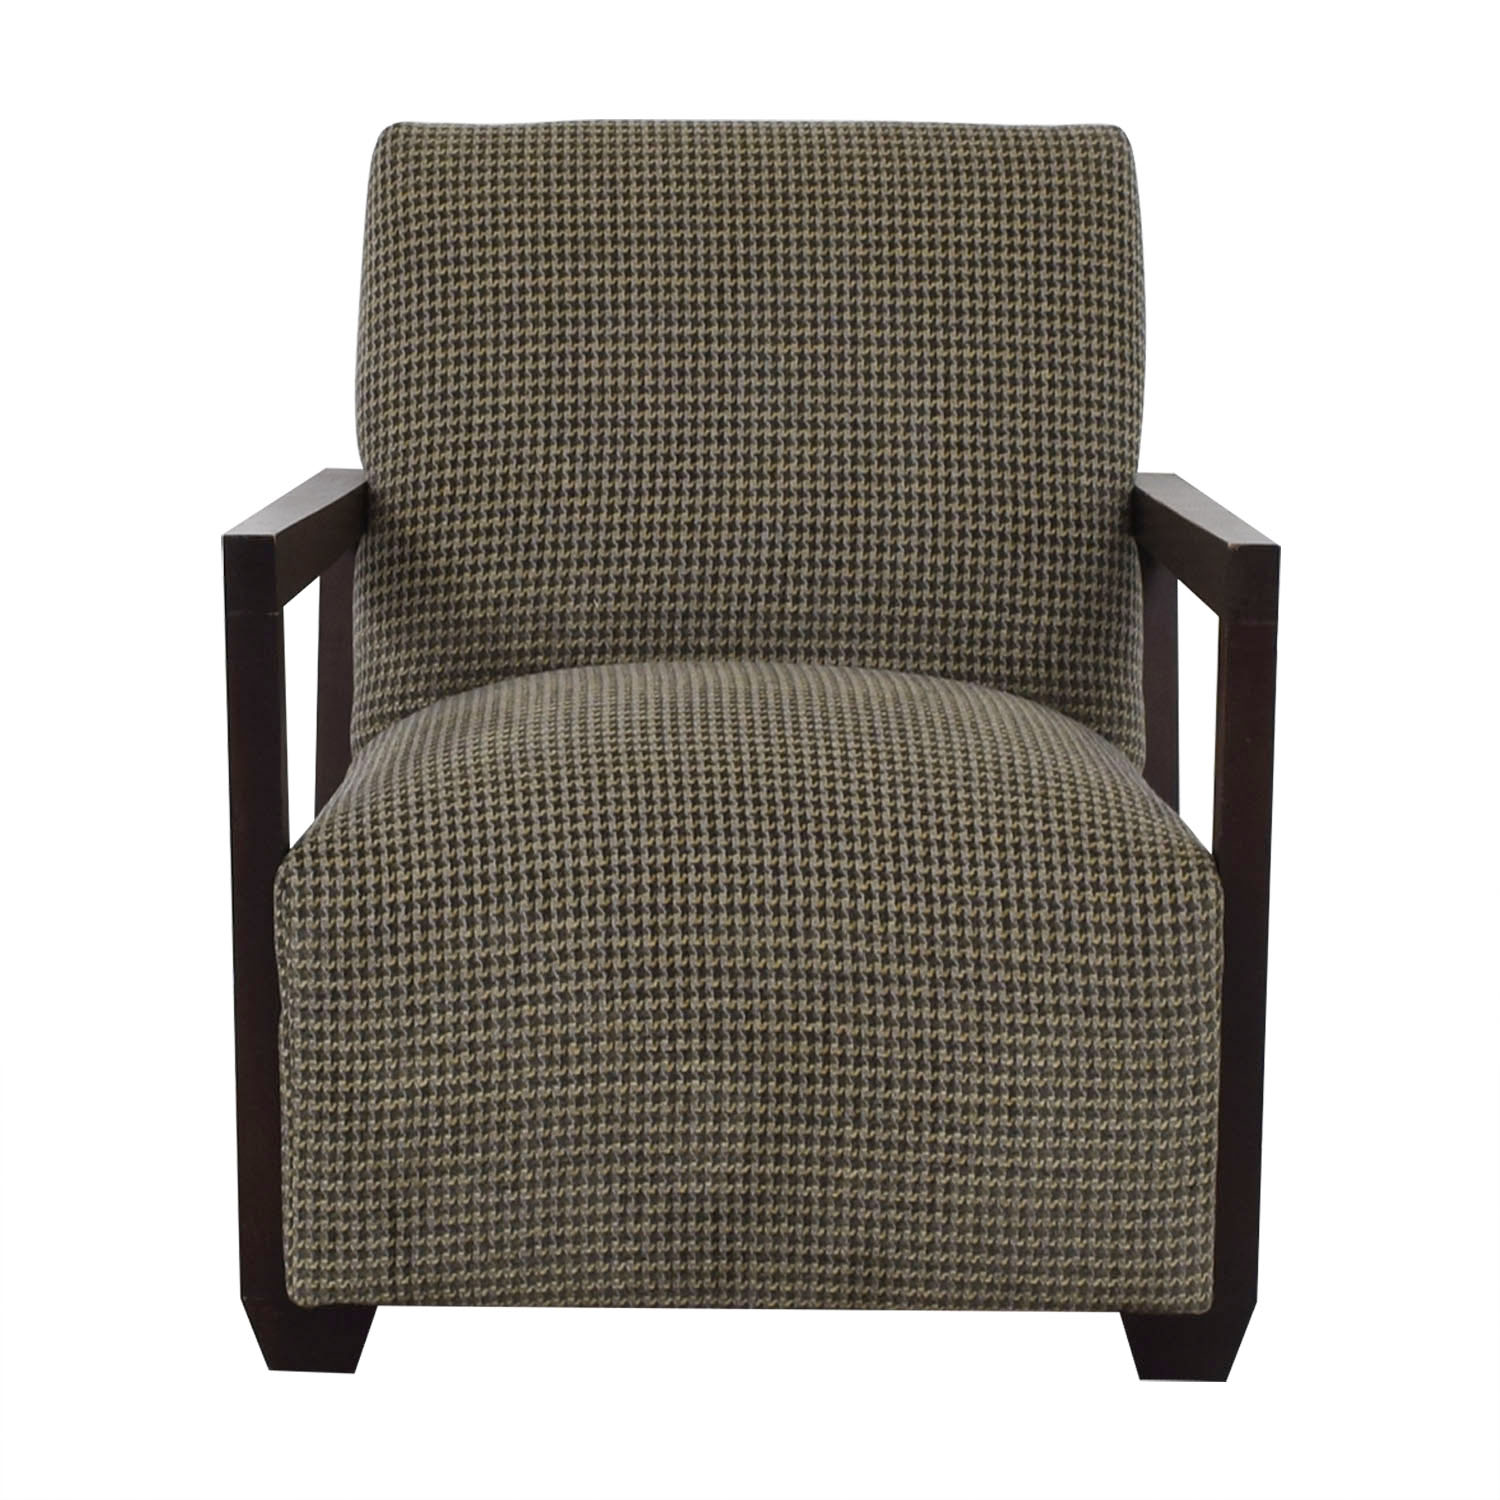 Custom Workroom Custom Workroom Classic Armchair on sale